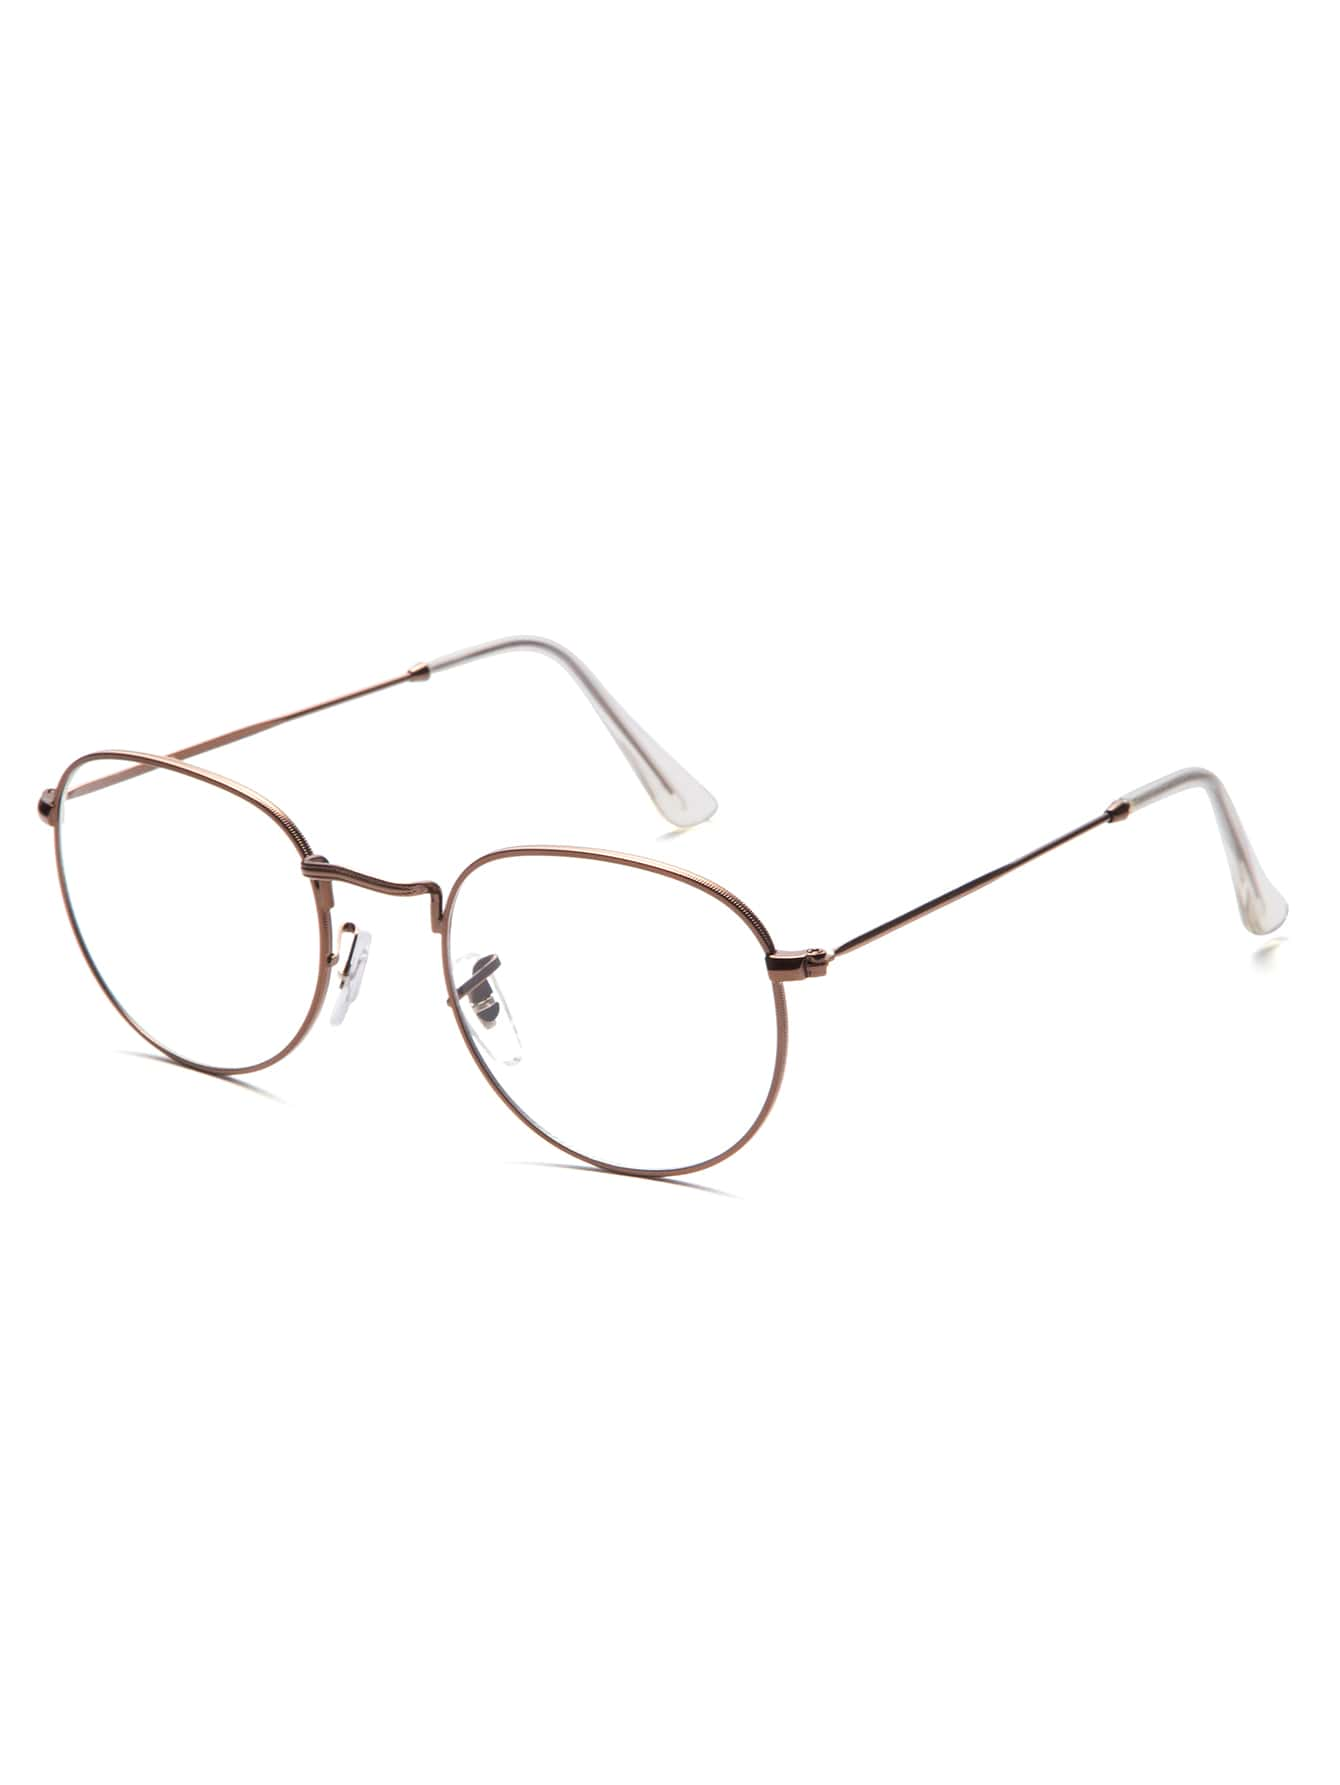 Thin Frame Hipster Glasses : Brown Thin Frame Clear Lens Glasses